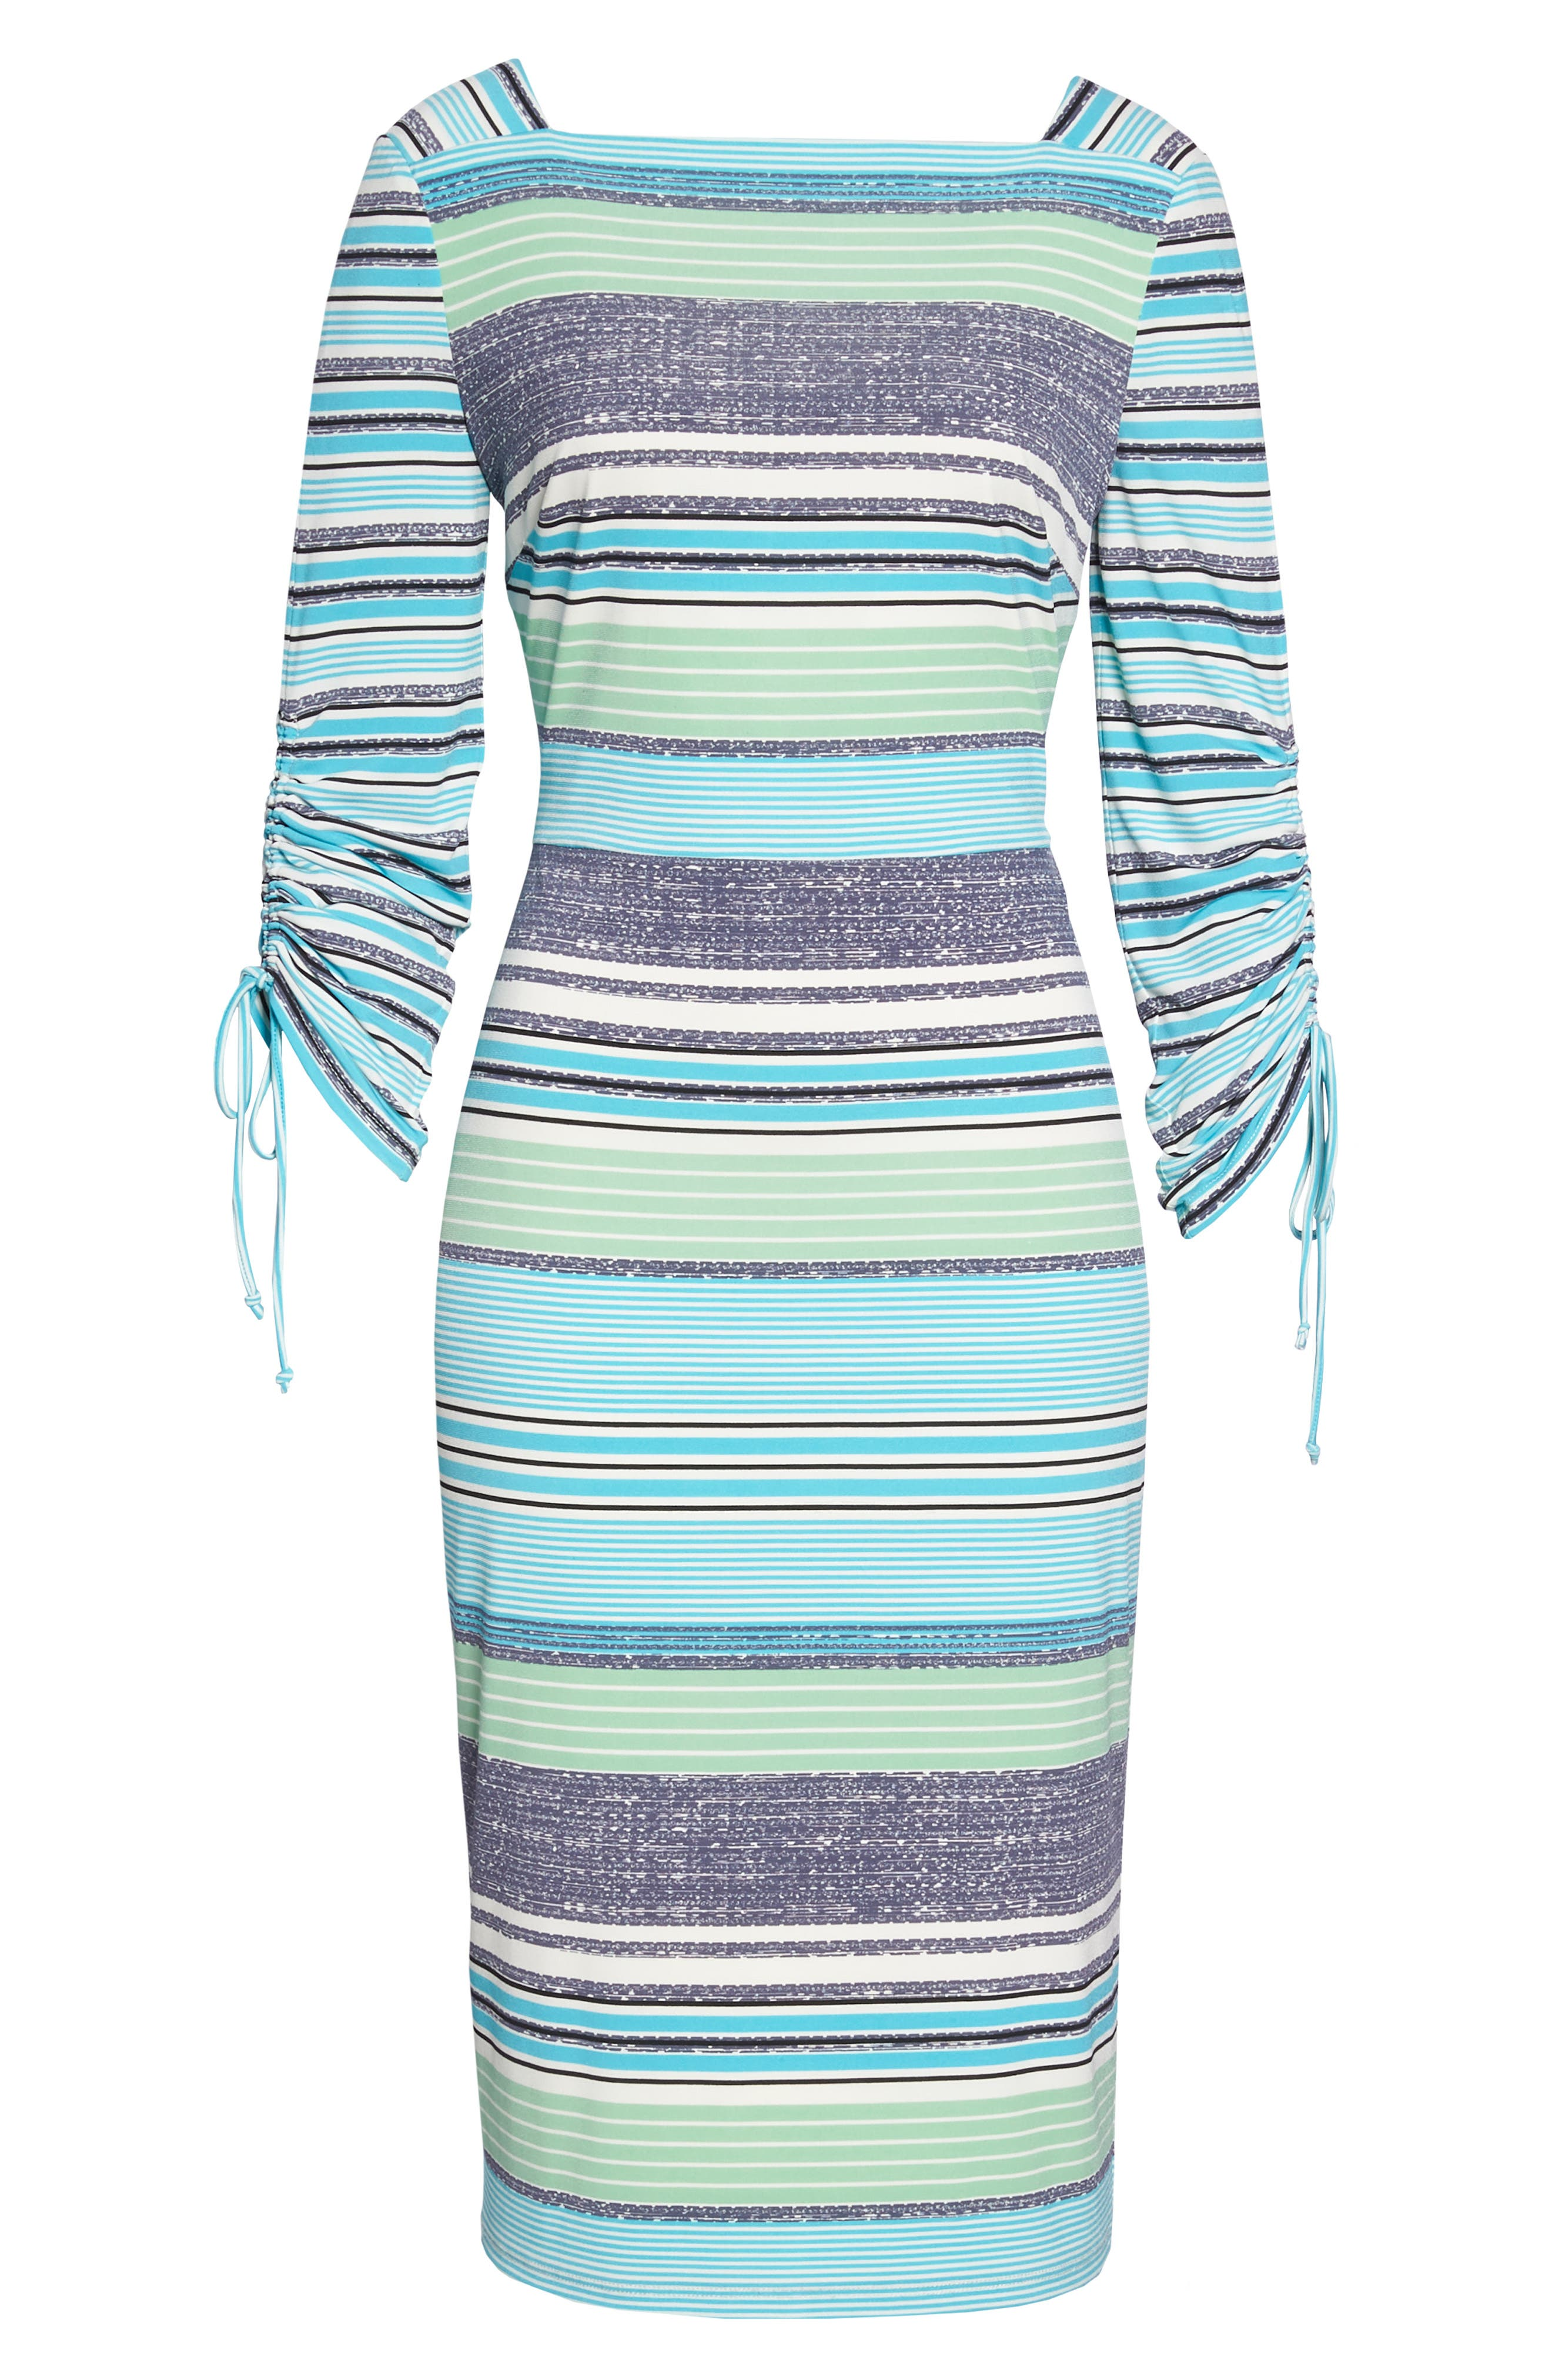 Ruched Sleeve Sheath Dress,                             Alternate thumbnail 7, color,                             WHITE/ AQUA